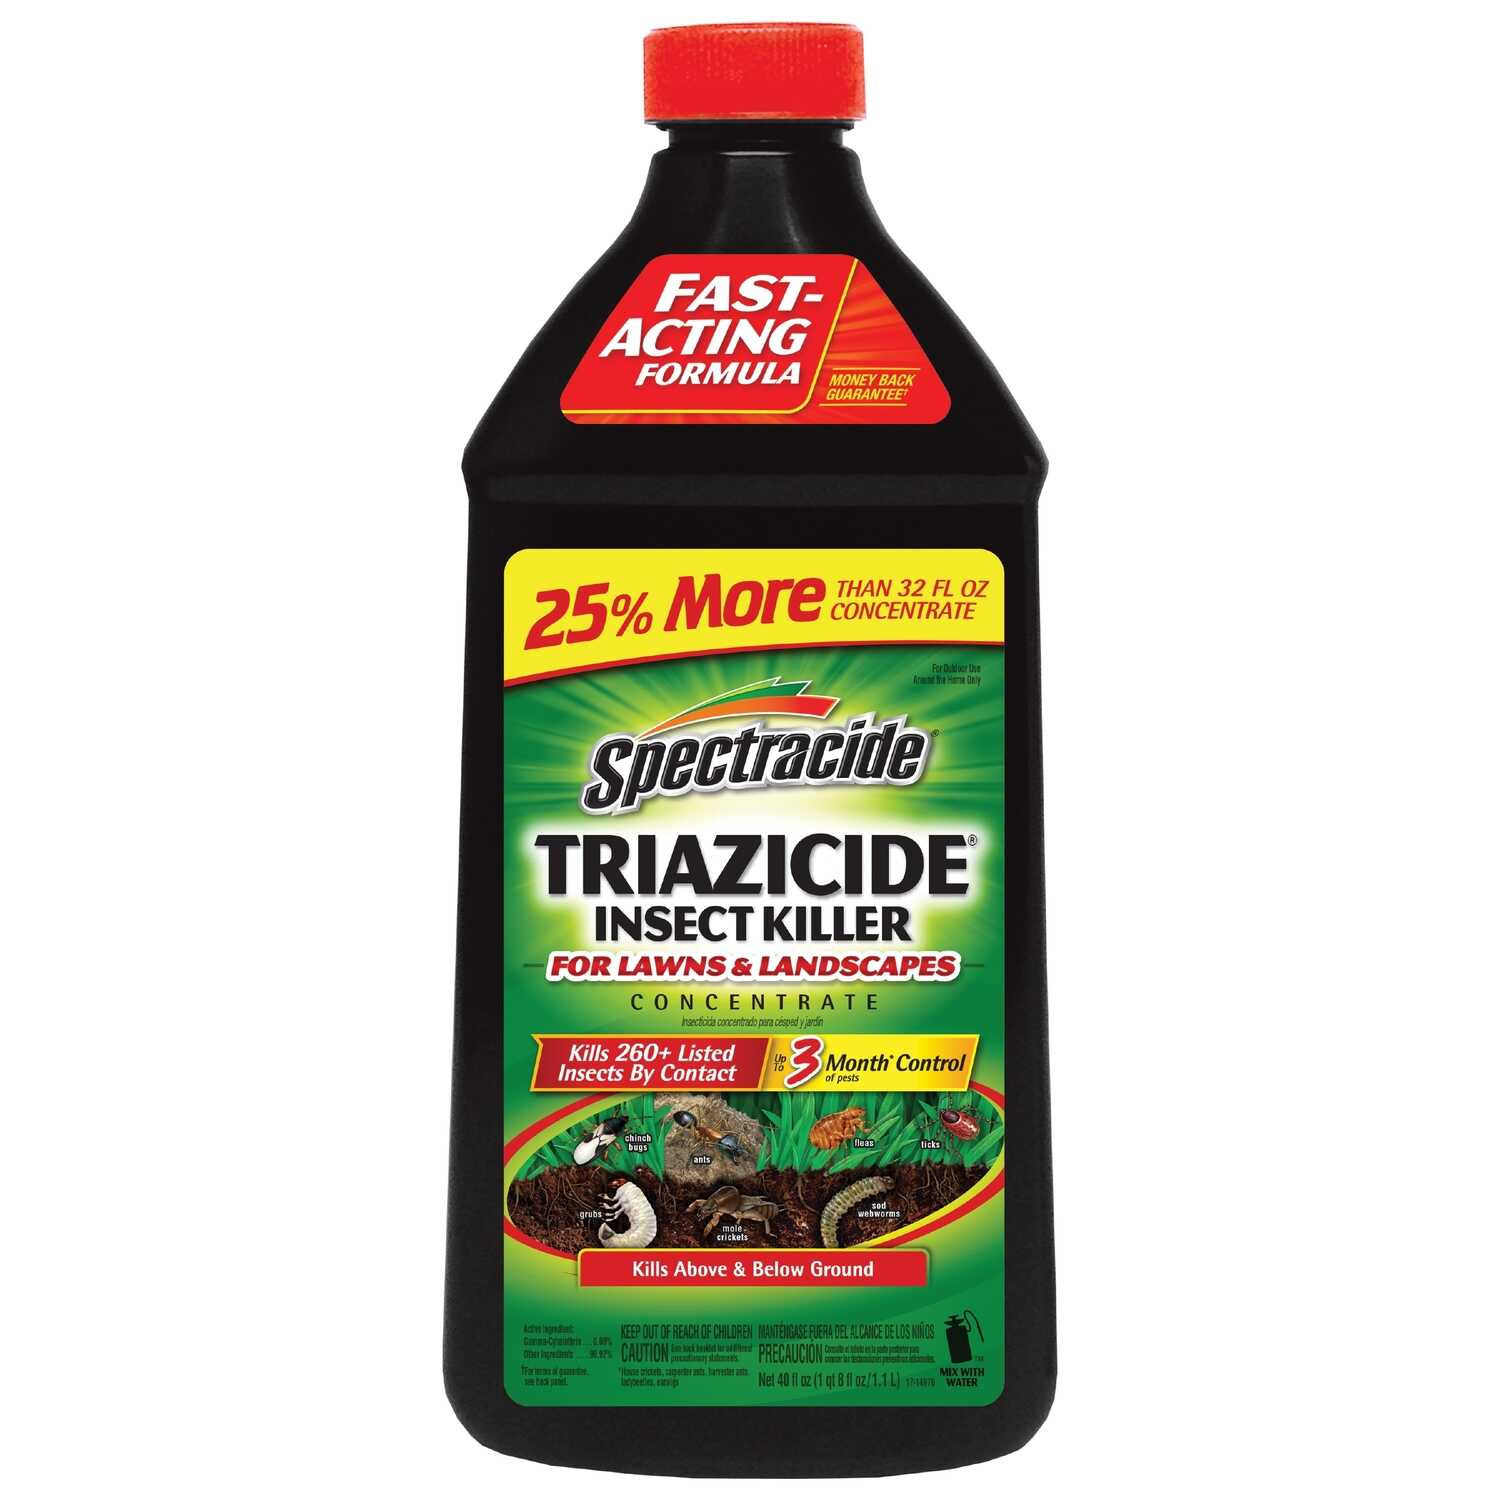 Spectracide  Triazicide  Insect Killer  32 oz.